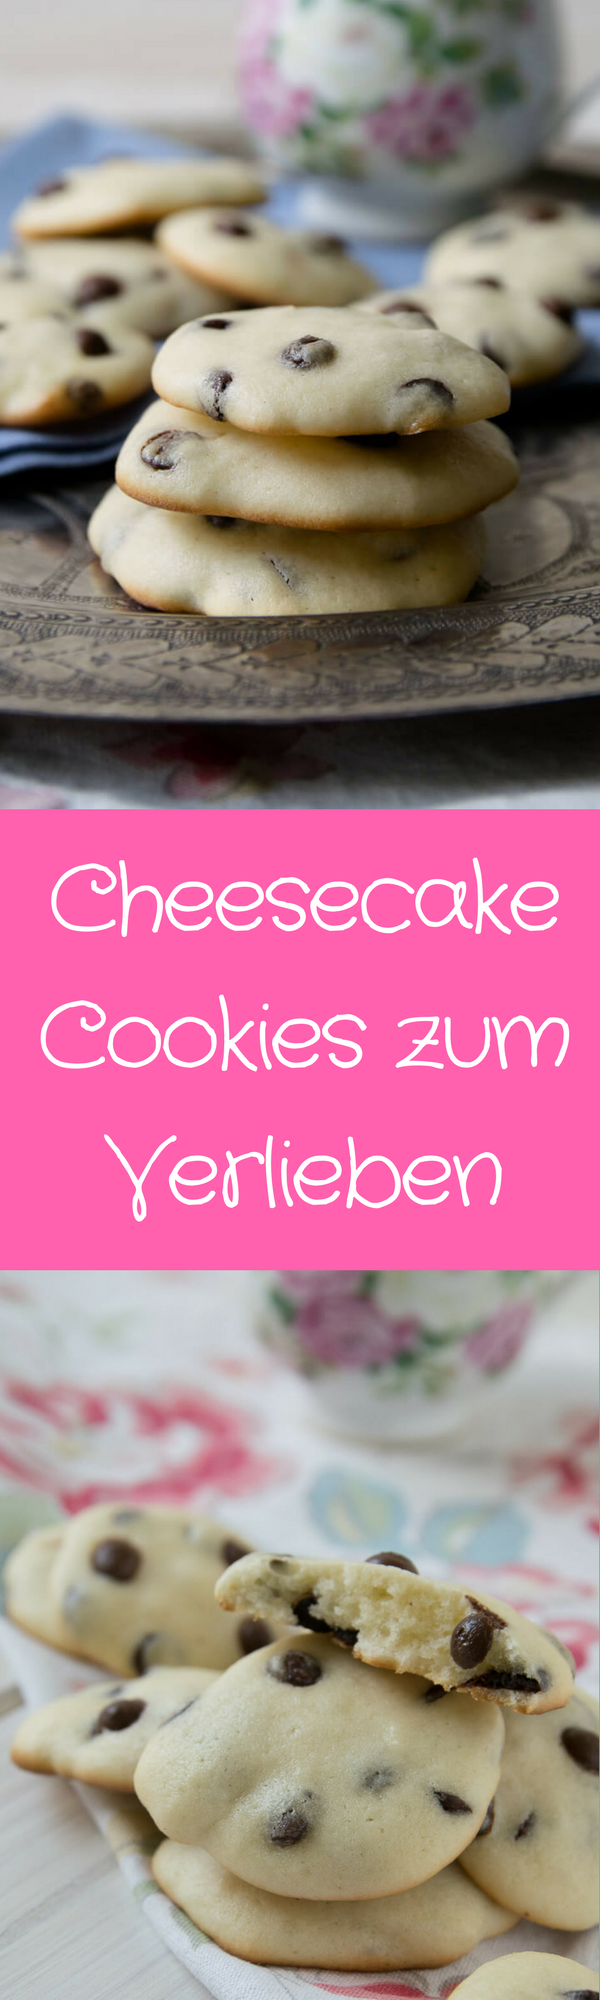 Cheesecake Cookies mit Chocolate Chips #cheesecake